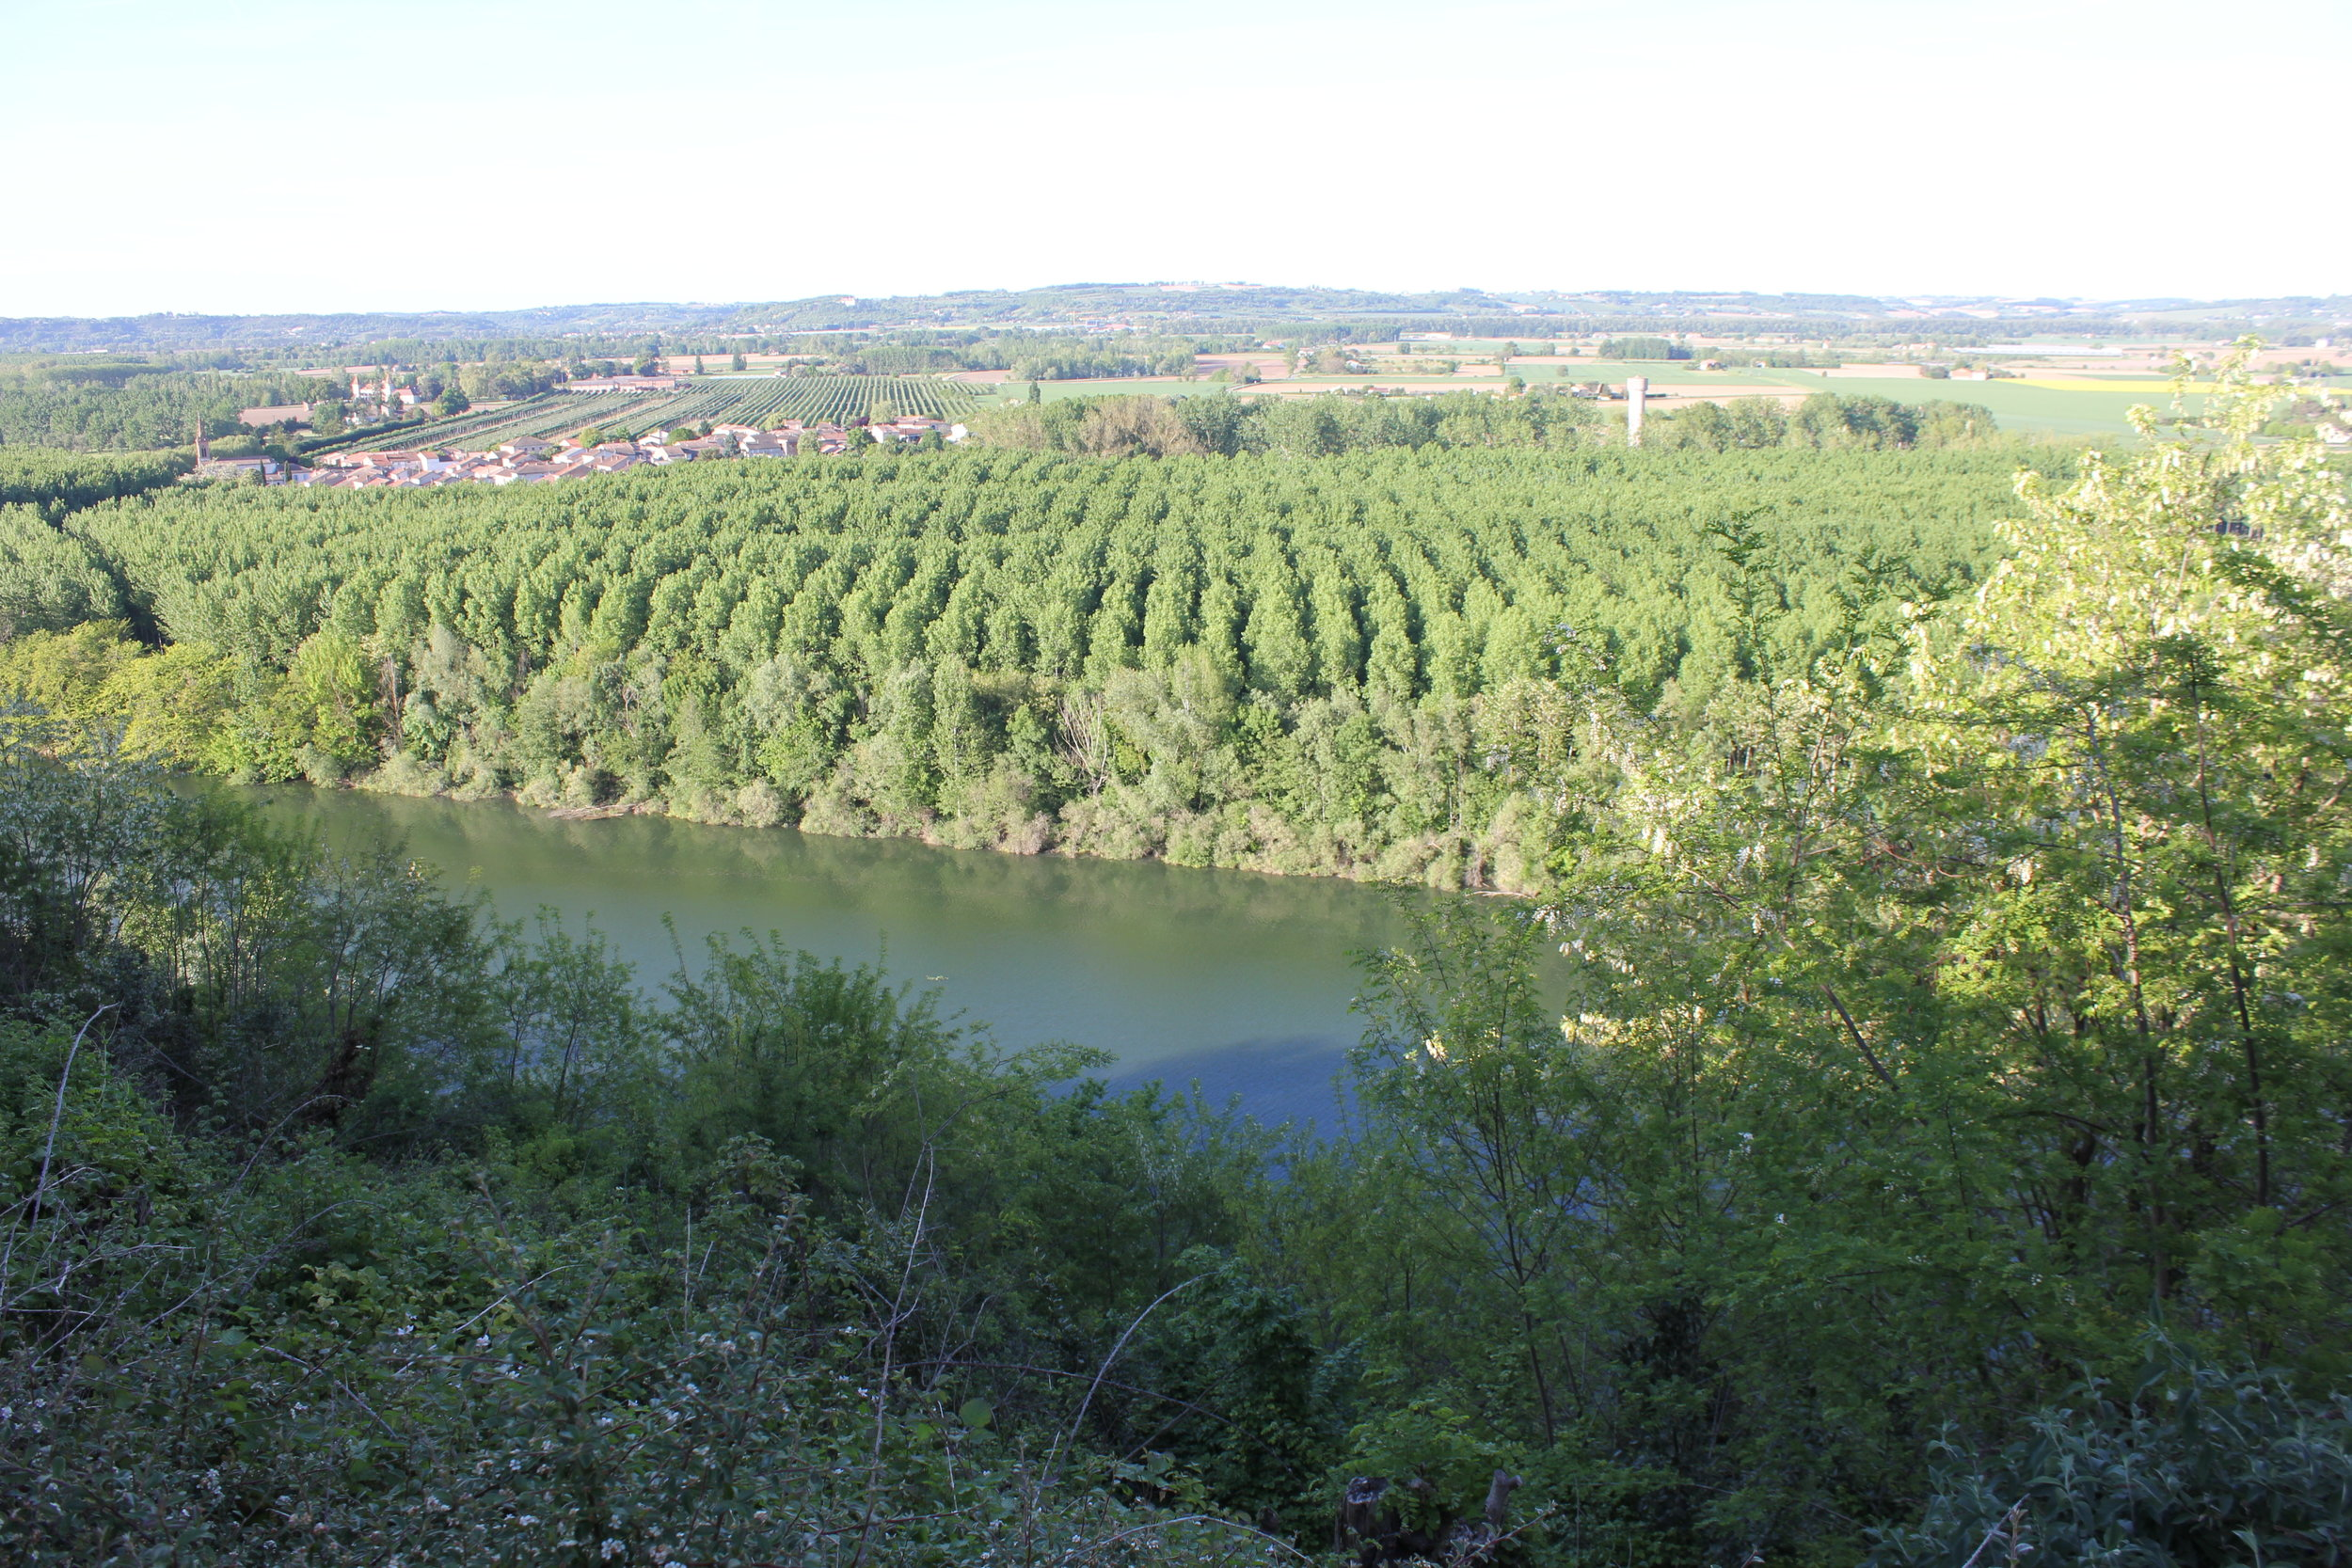 The view of the River Garonne from Auvillar.